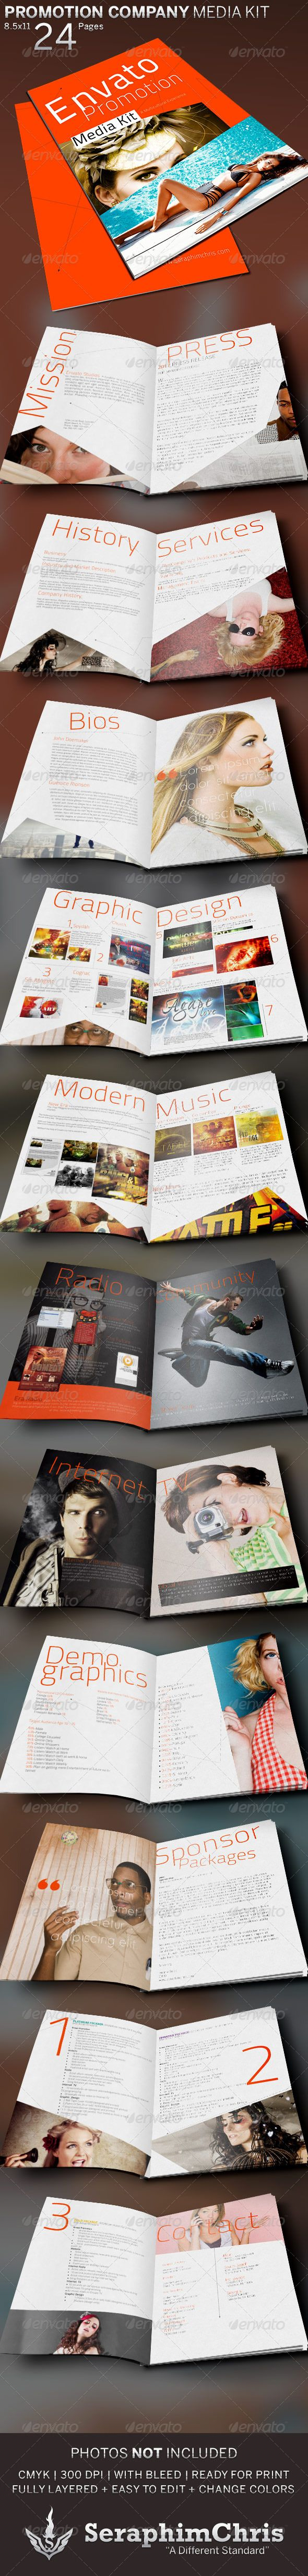 Promotion Company Media Kit Booklet Template  #24 pages #advertisement #biography • Available here → http://graphicriver.net/item/promotion-company-media-kit-booklet-template/5282137?s_rank=46&ref=pxcr